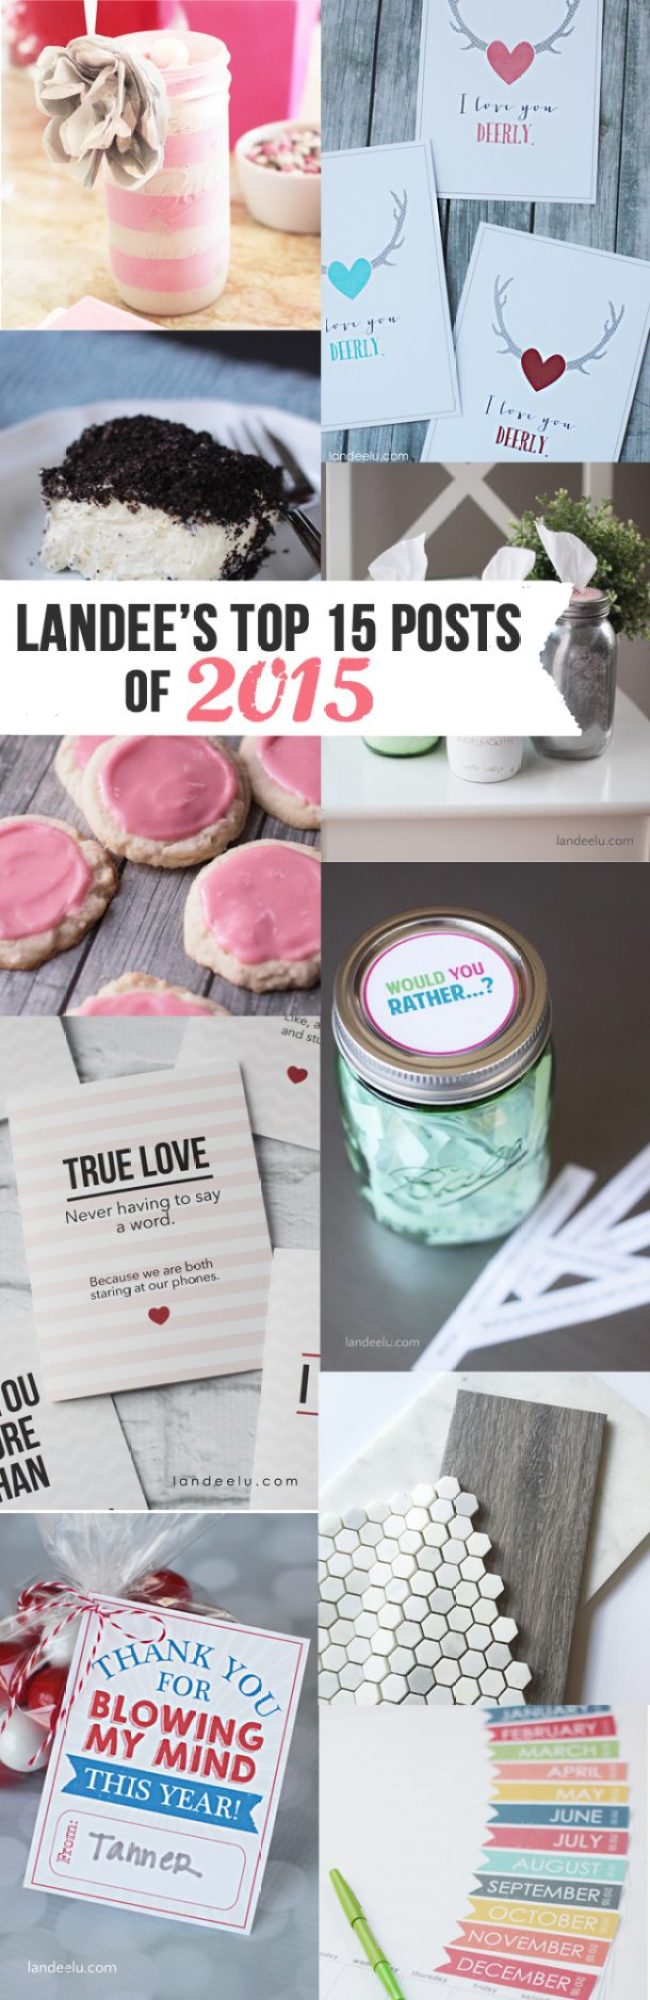 Landee's TOP POSTS 2015